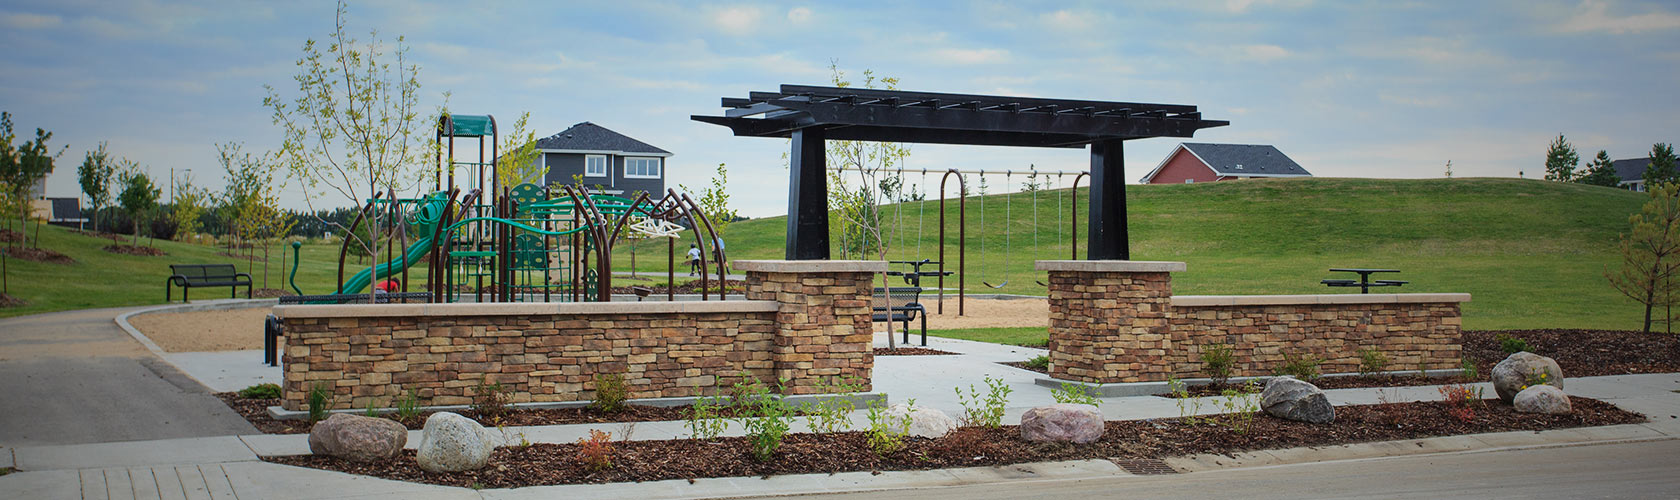 new build communities +amenity +playground +school +edmonton +leduc